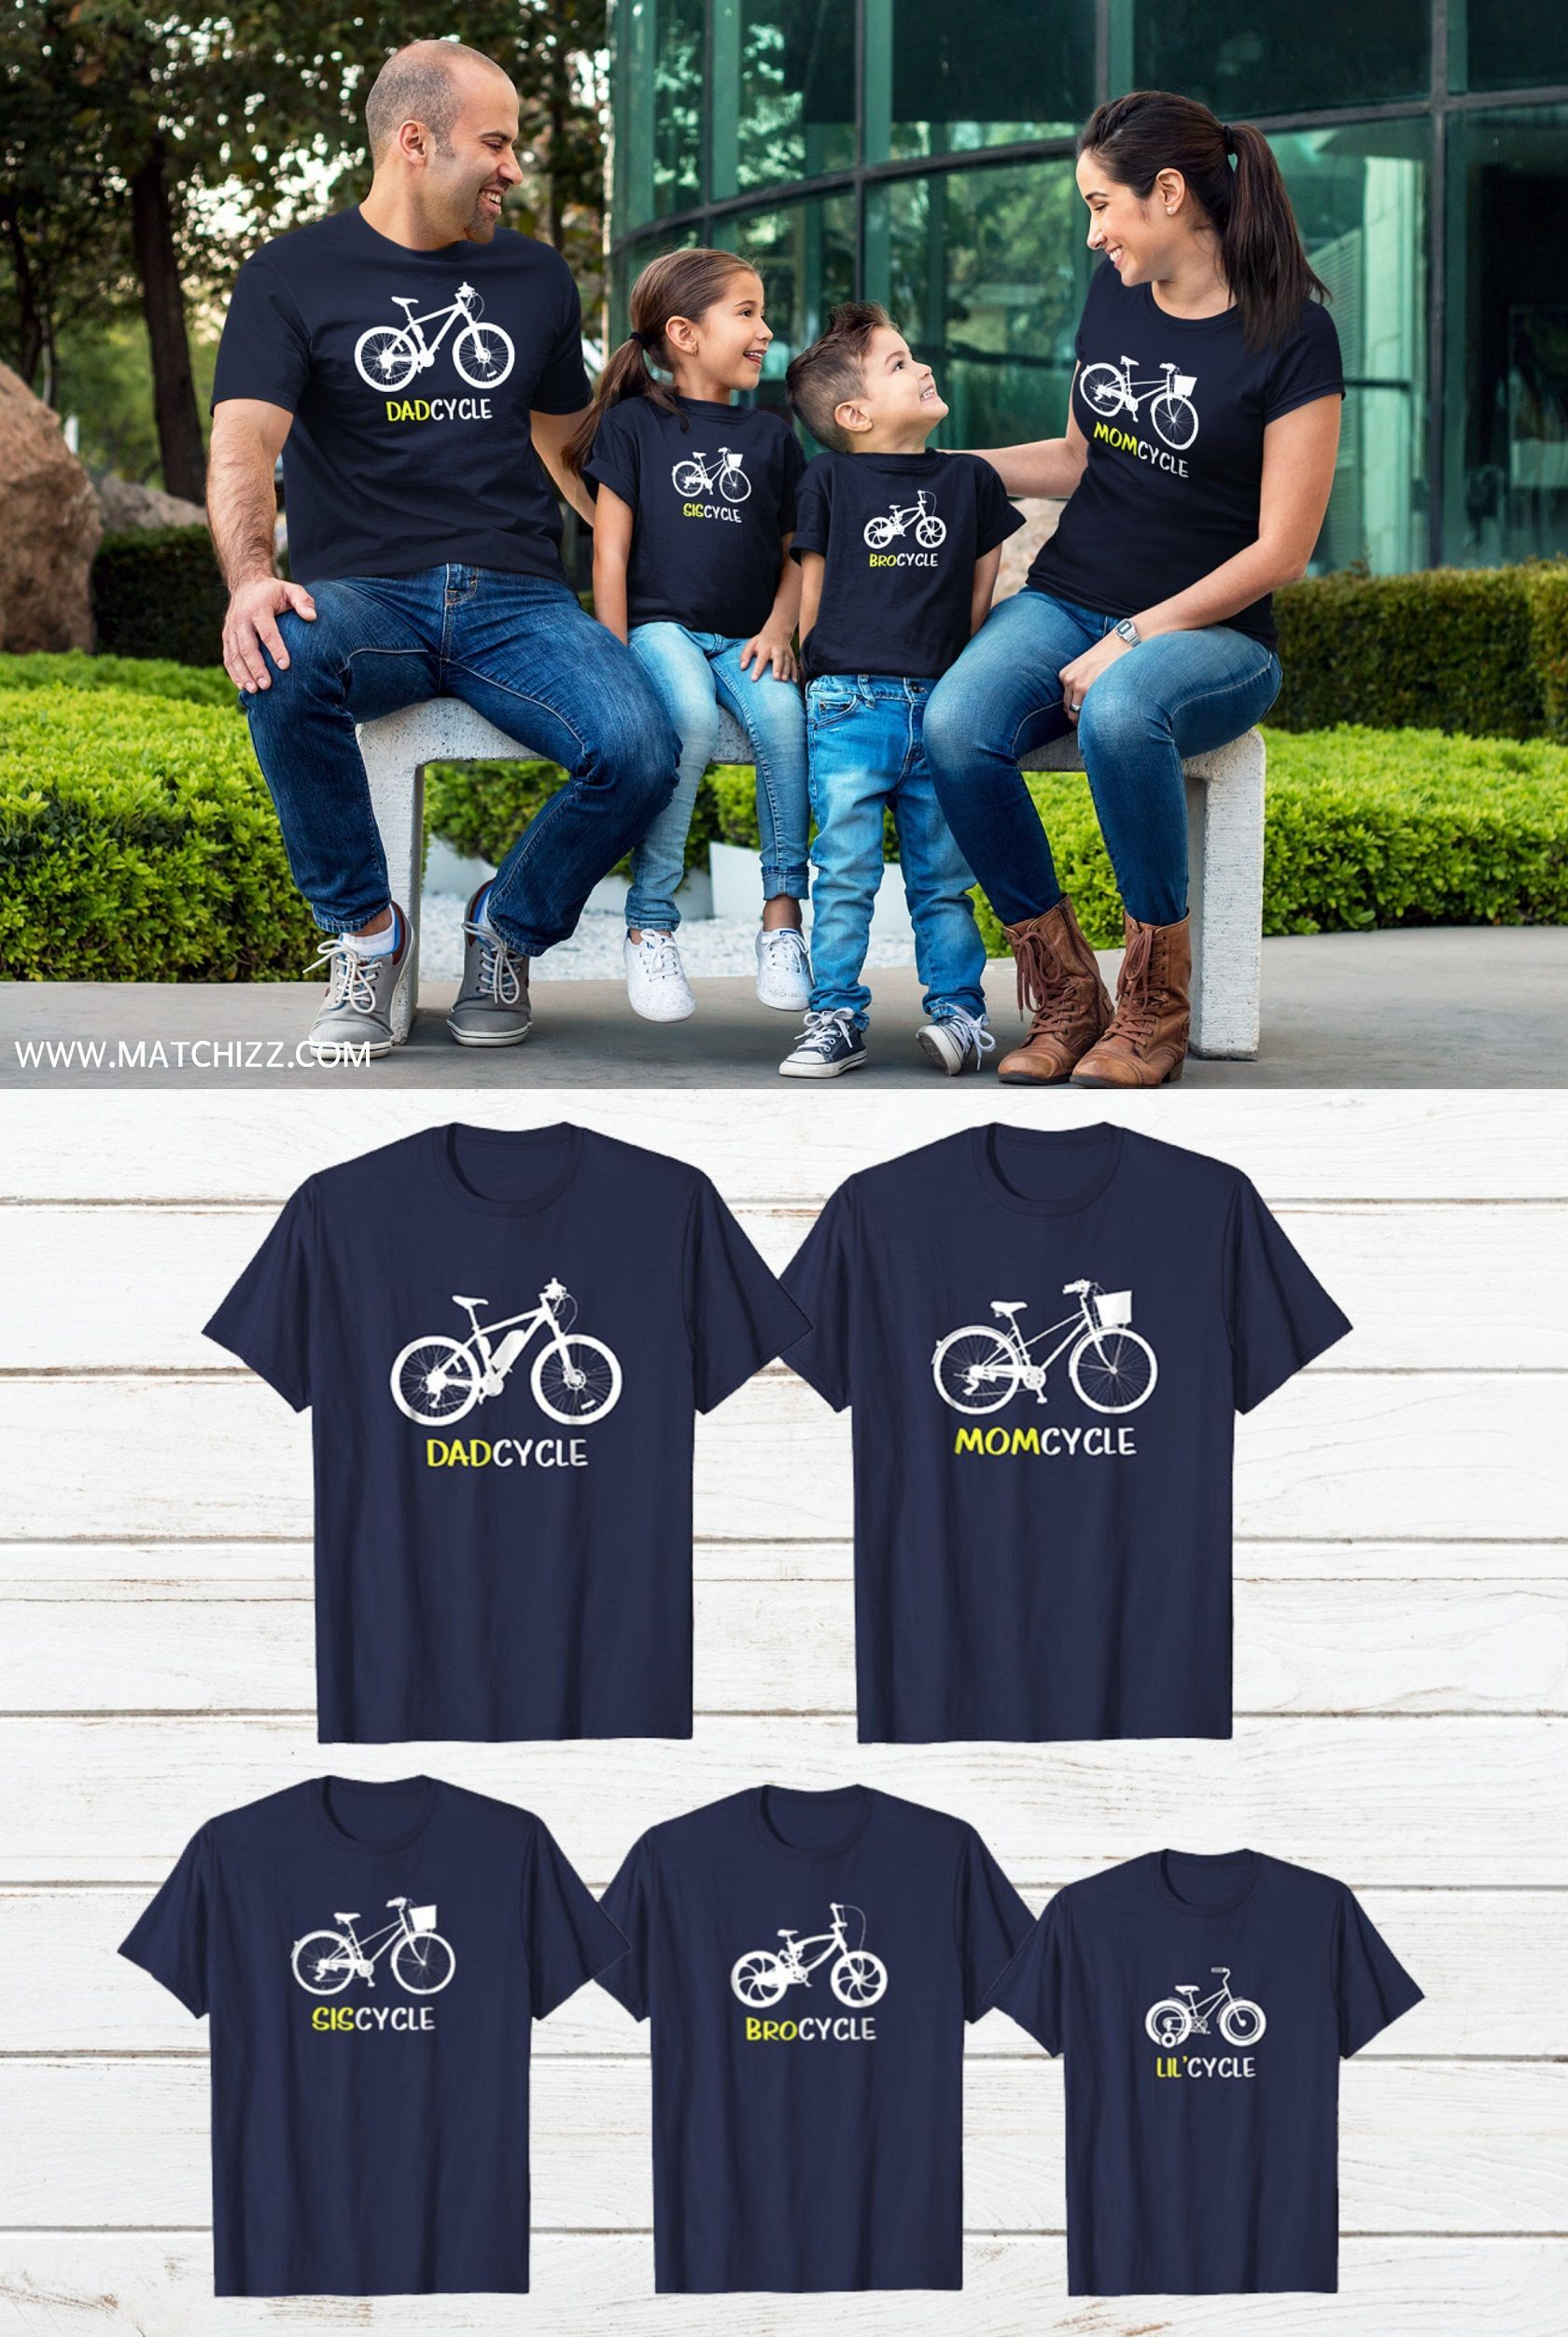 5675f94ecb Cycling Family Outfit Bicycle Mom Dad Son Daughter Matching Shirts  #familyshirts #familyoutfits #familymatchingoutfits#matchingfamilyoutfits  #familypictuyre ...